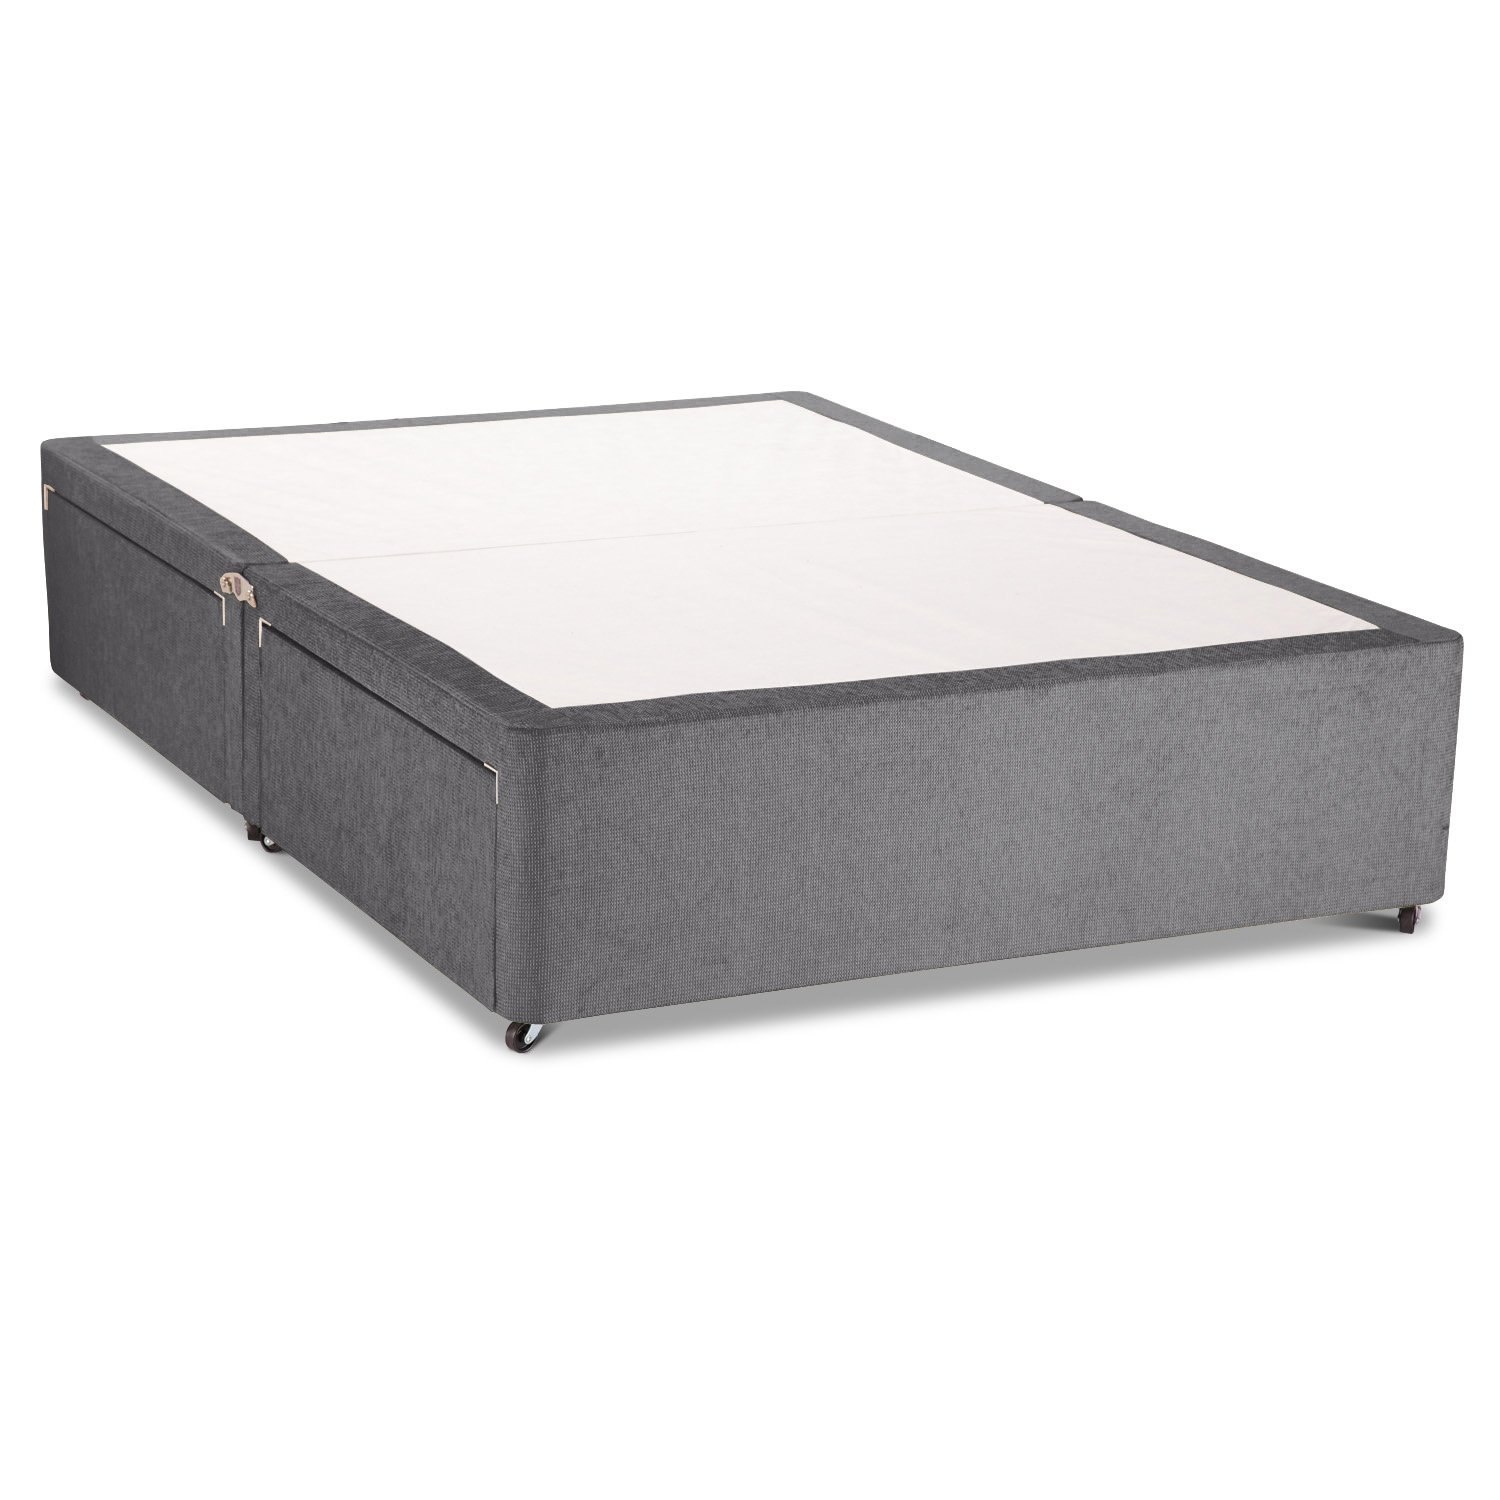 hypnos bed co storage home drawer with base uk amazon drawers kitchen divan dp eertjl double